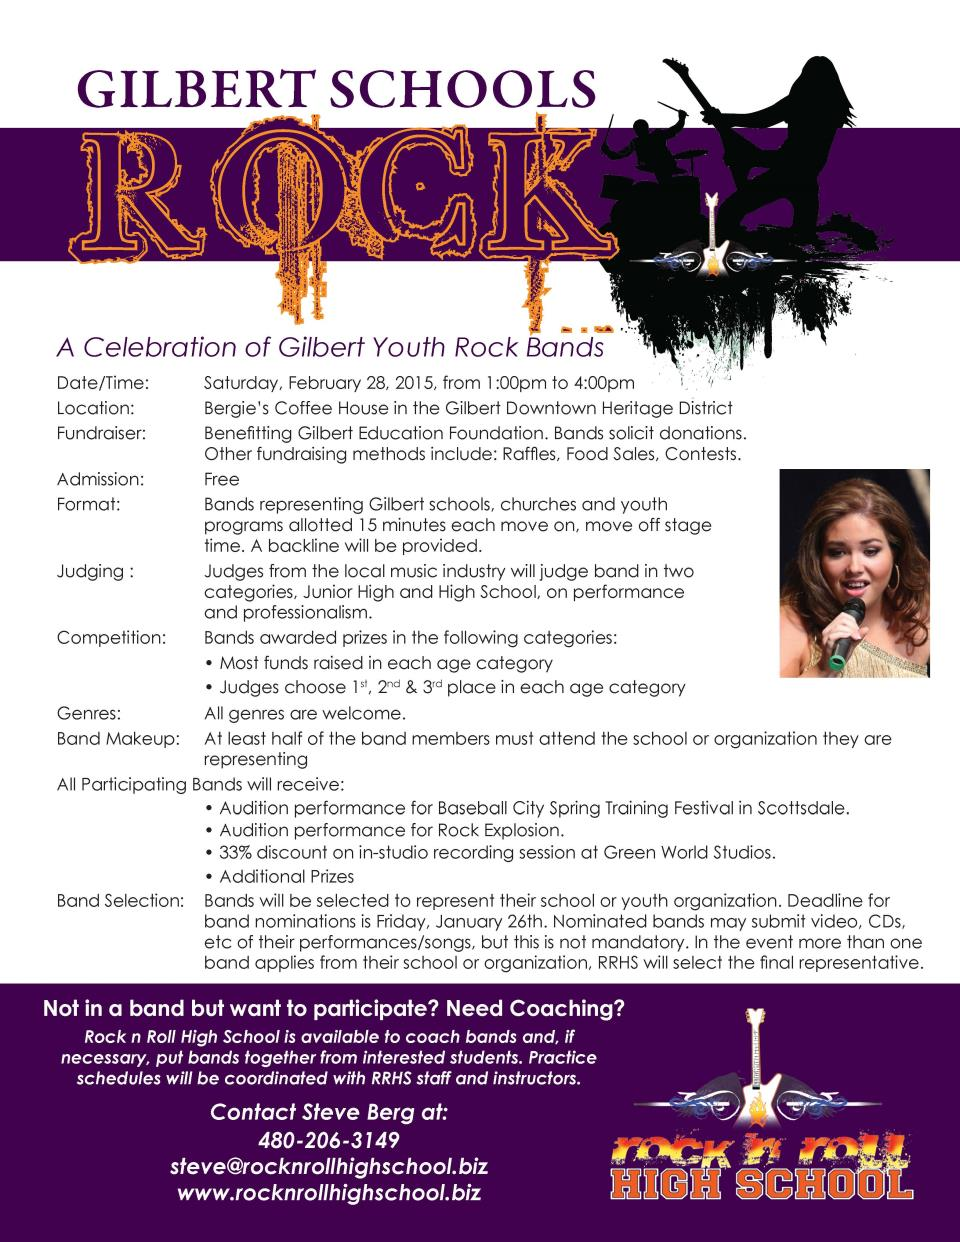 Gilbert Schools Rock Flyer(2)_Page_2